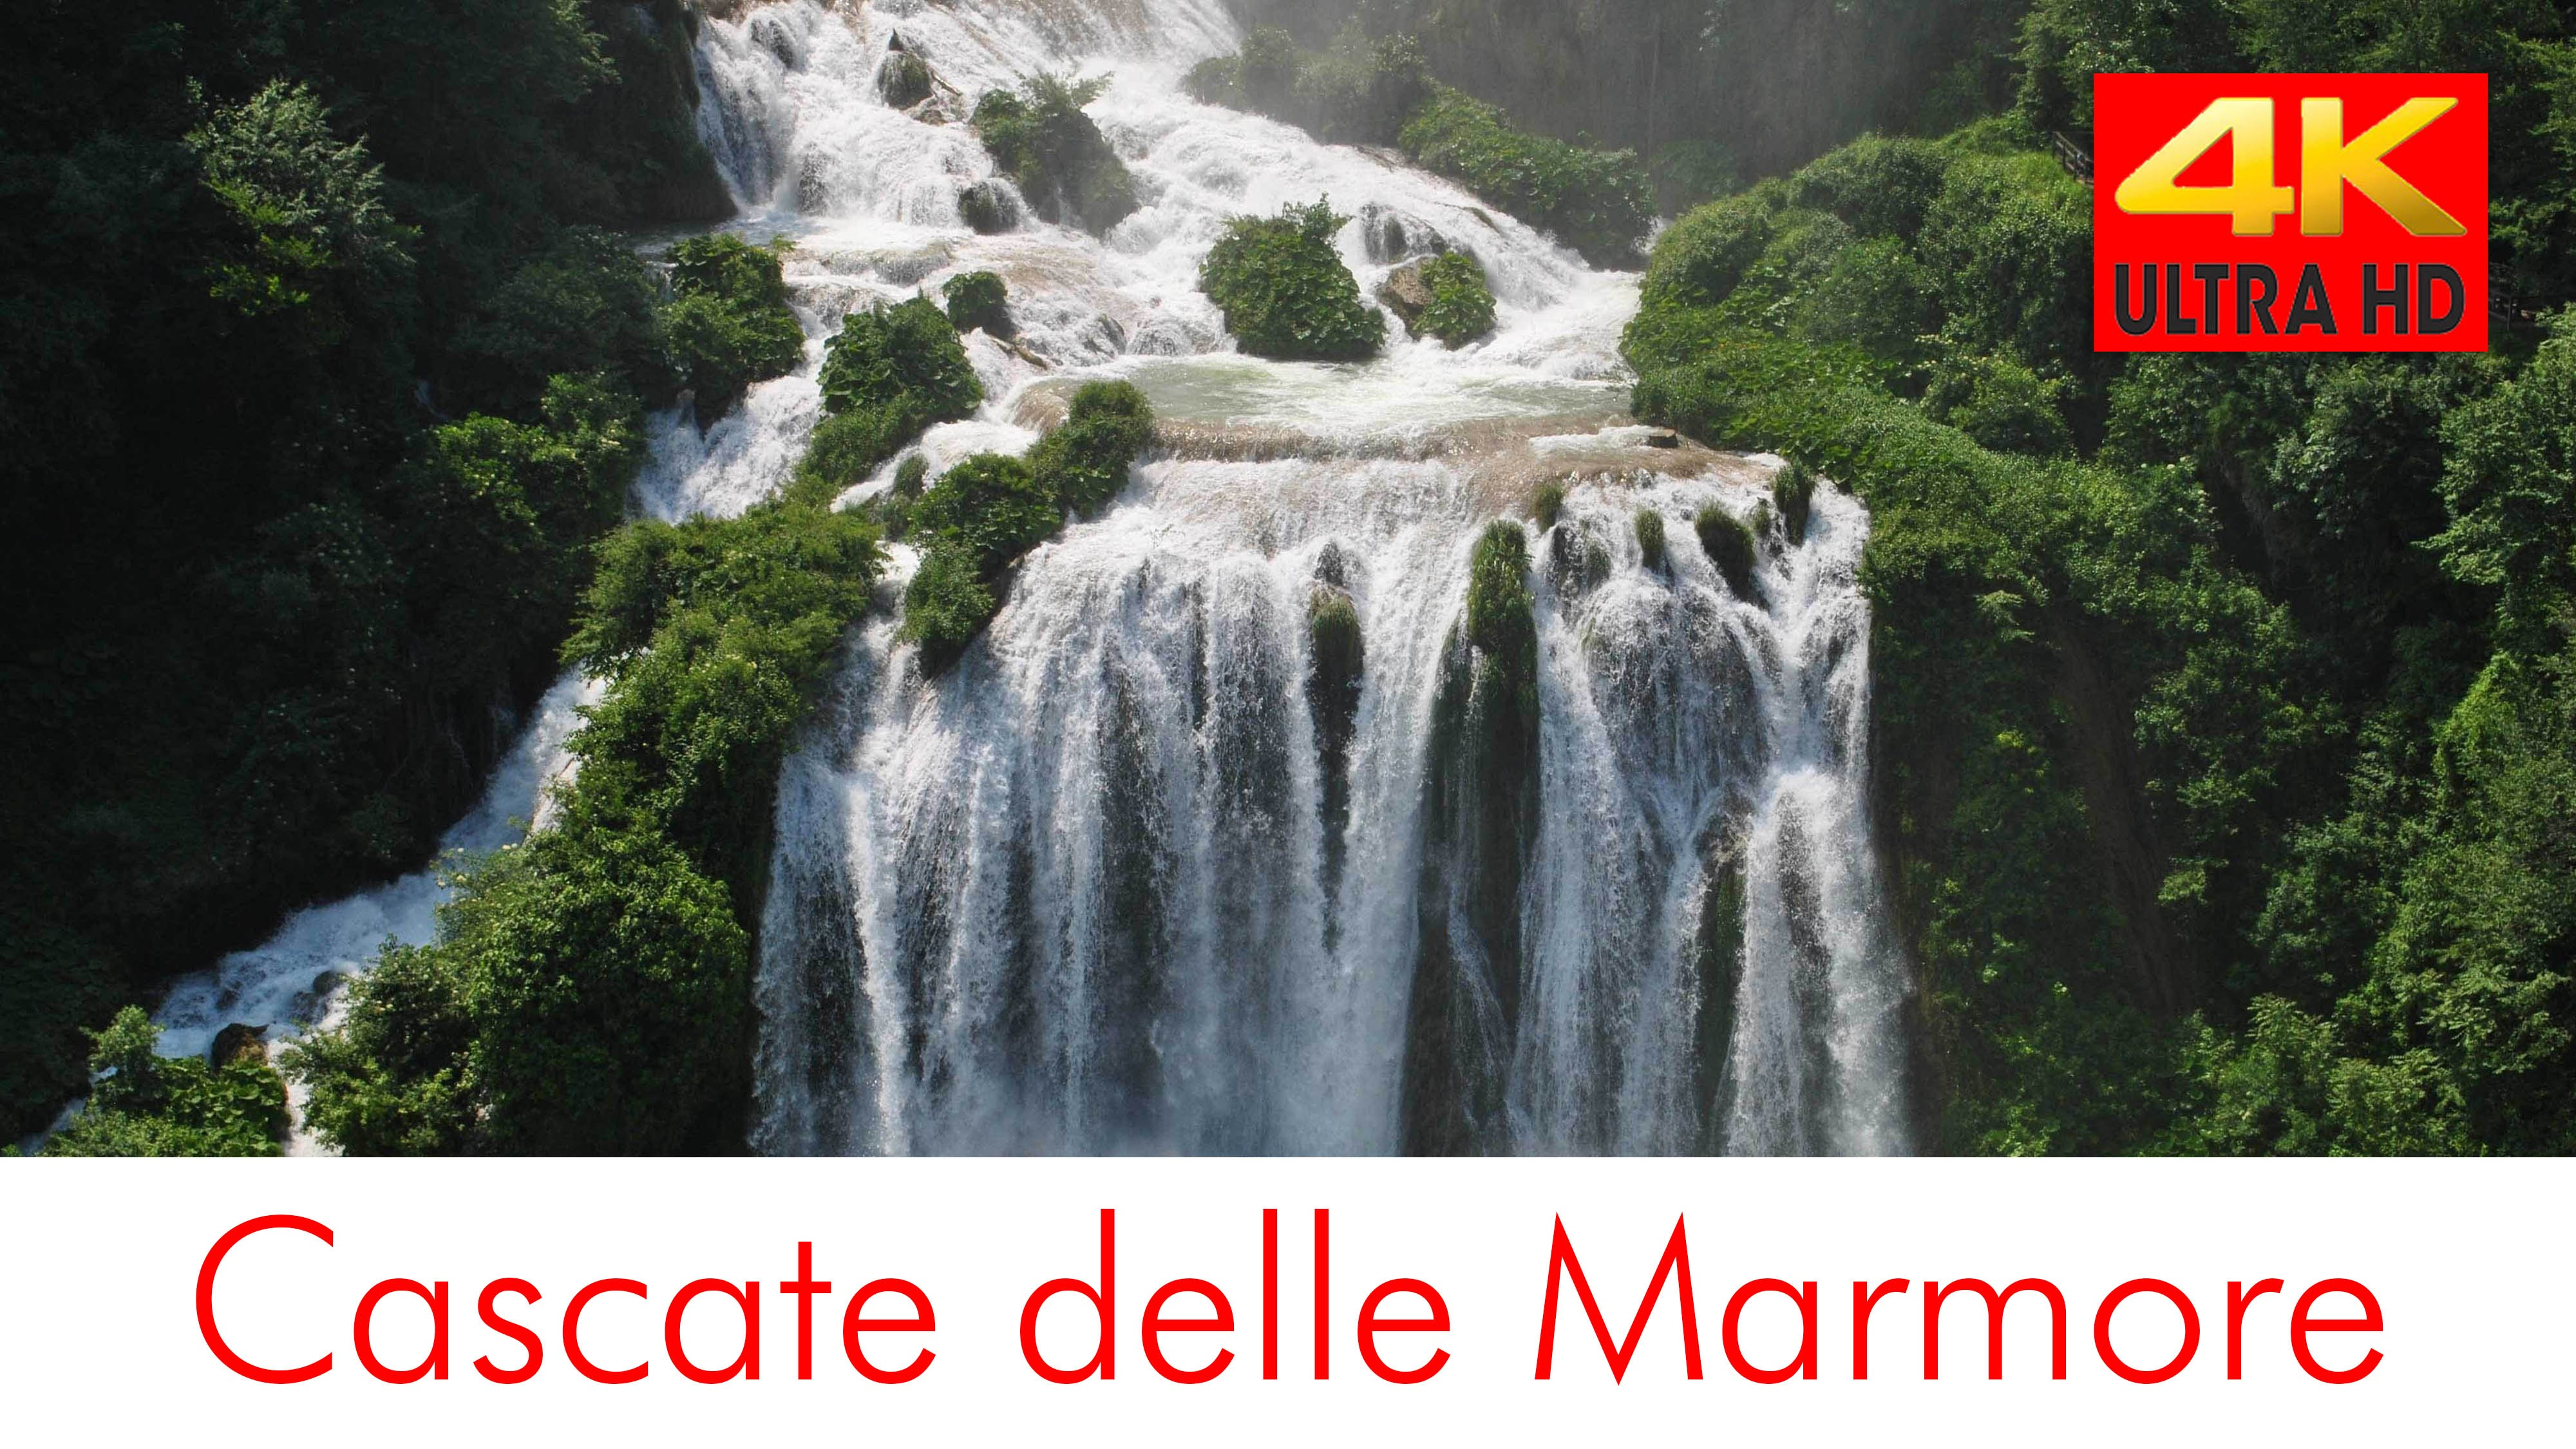 Cascata Delle Marmore svg #8, Download drawings